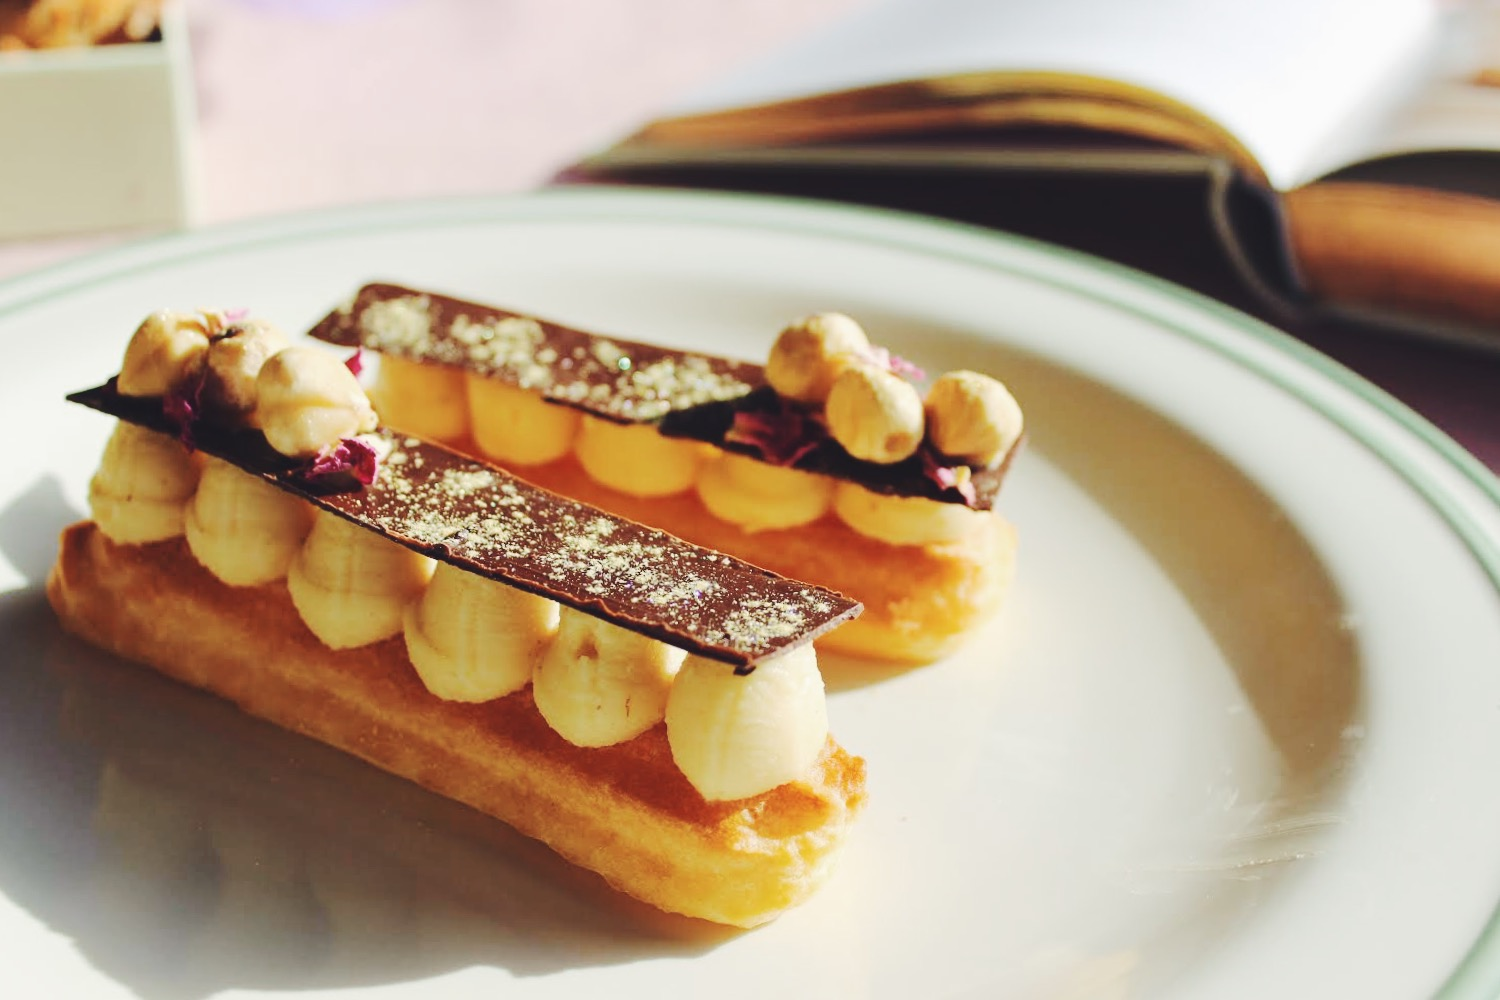 Hazelnut and Almond Paris-Brest